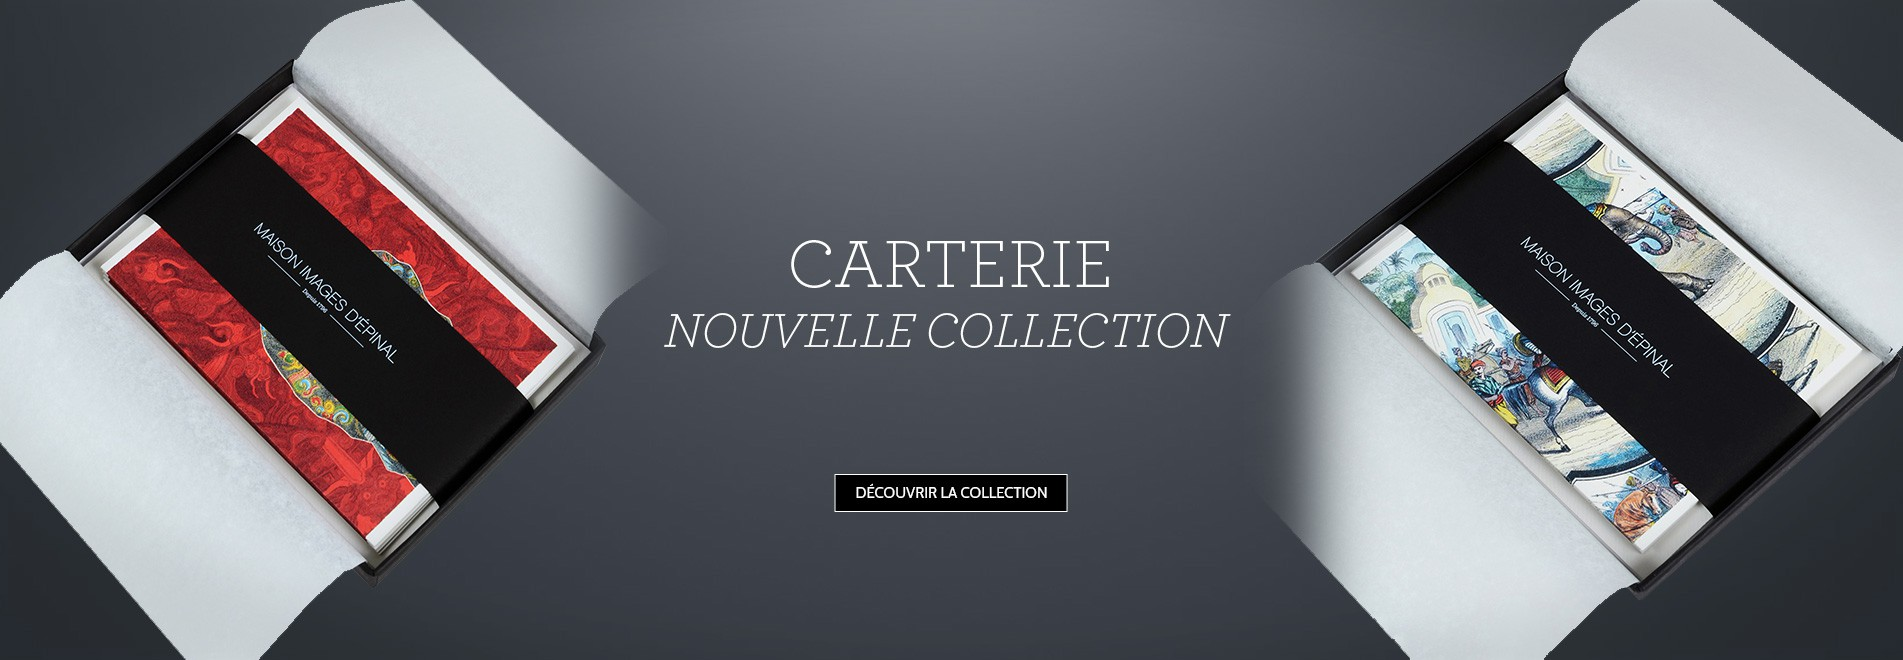 CARTERIE - NOUVELLE COLLECTION